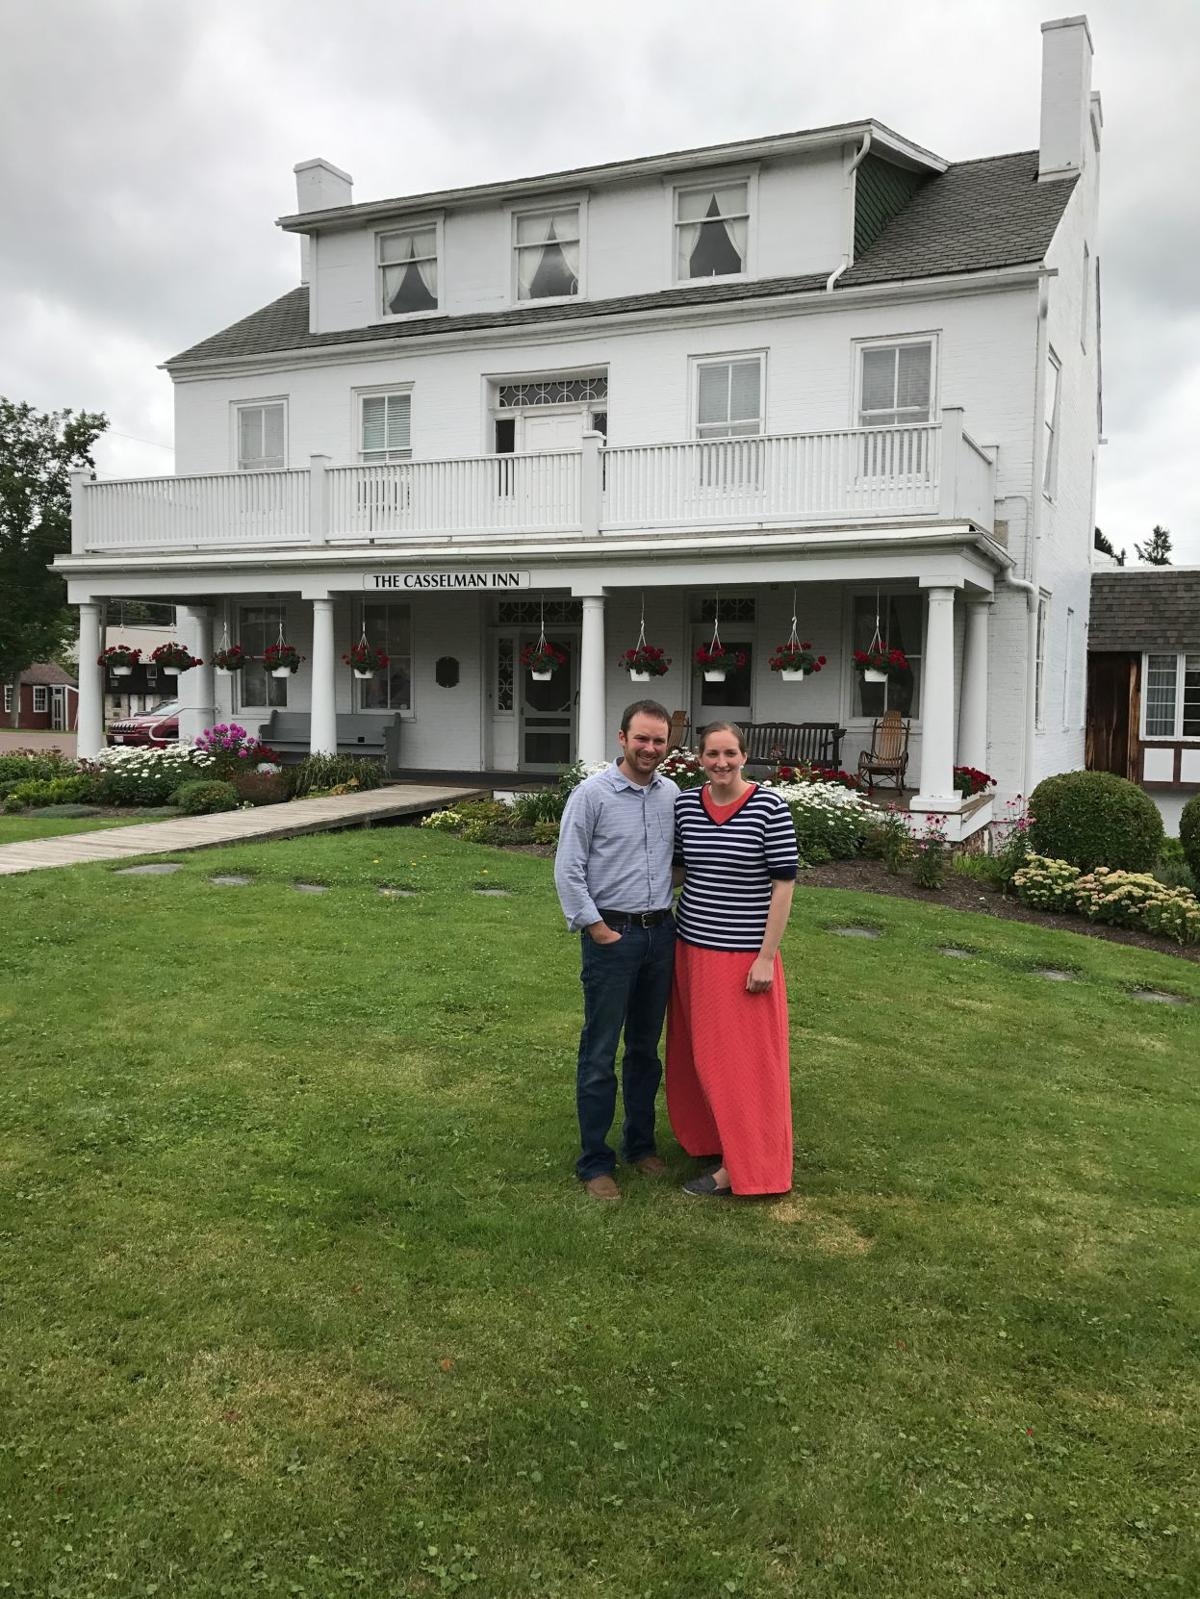 The Casselman Inn and Restaurant changes hands after 53 years